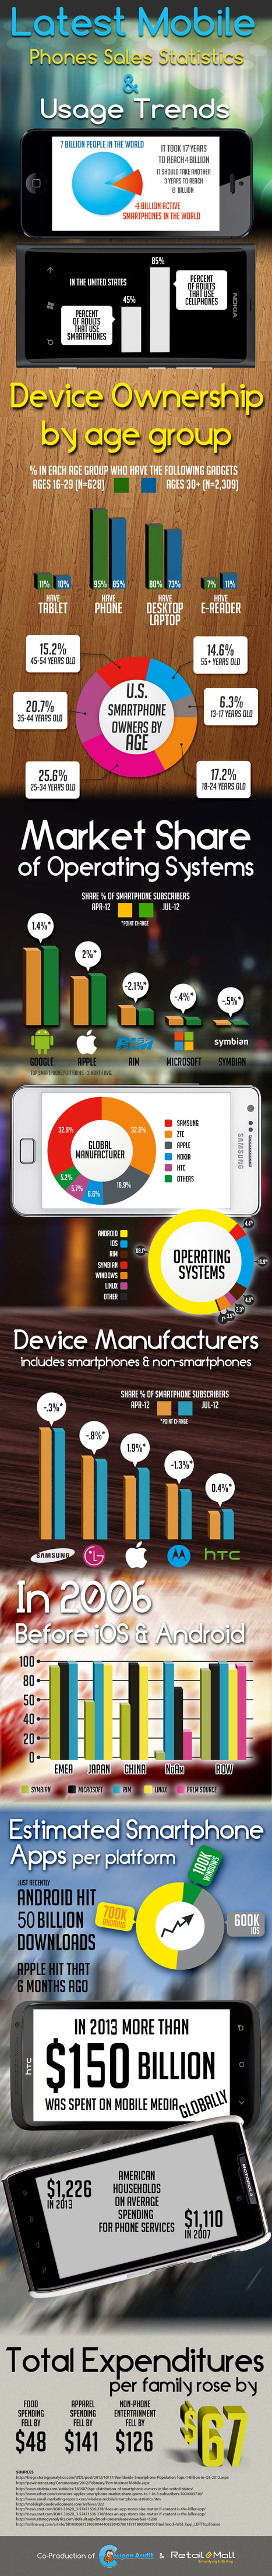 Latest Mobile Phones Sales Statistics Usage Trends | Ecommerce - Store, Mall, Online Payment | Scoop.it